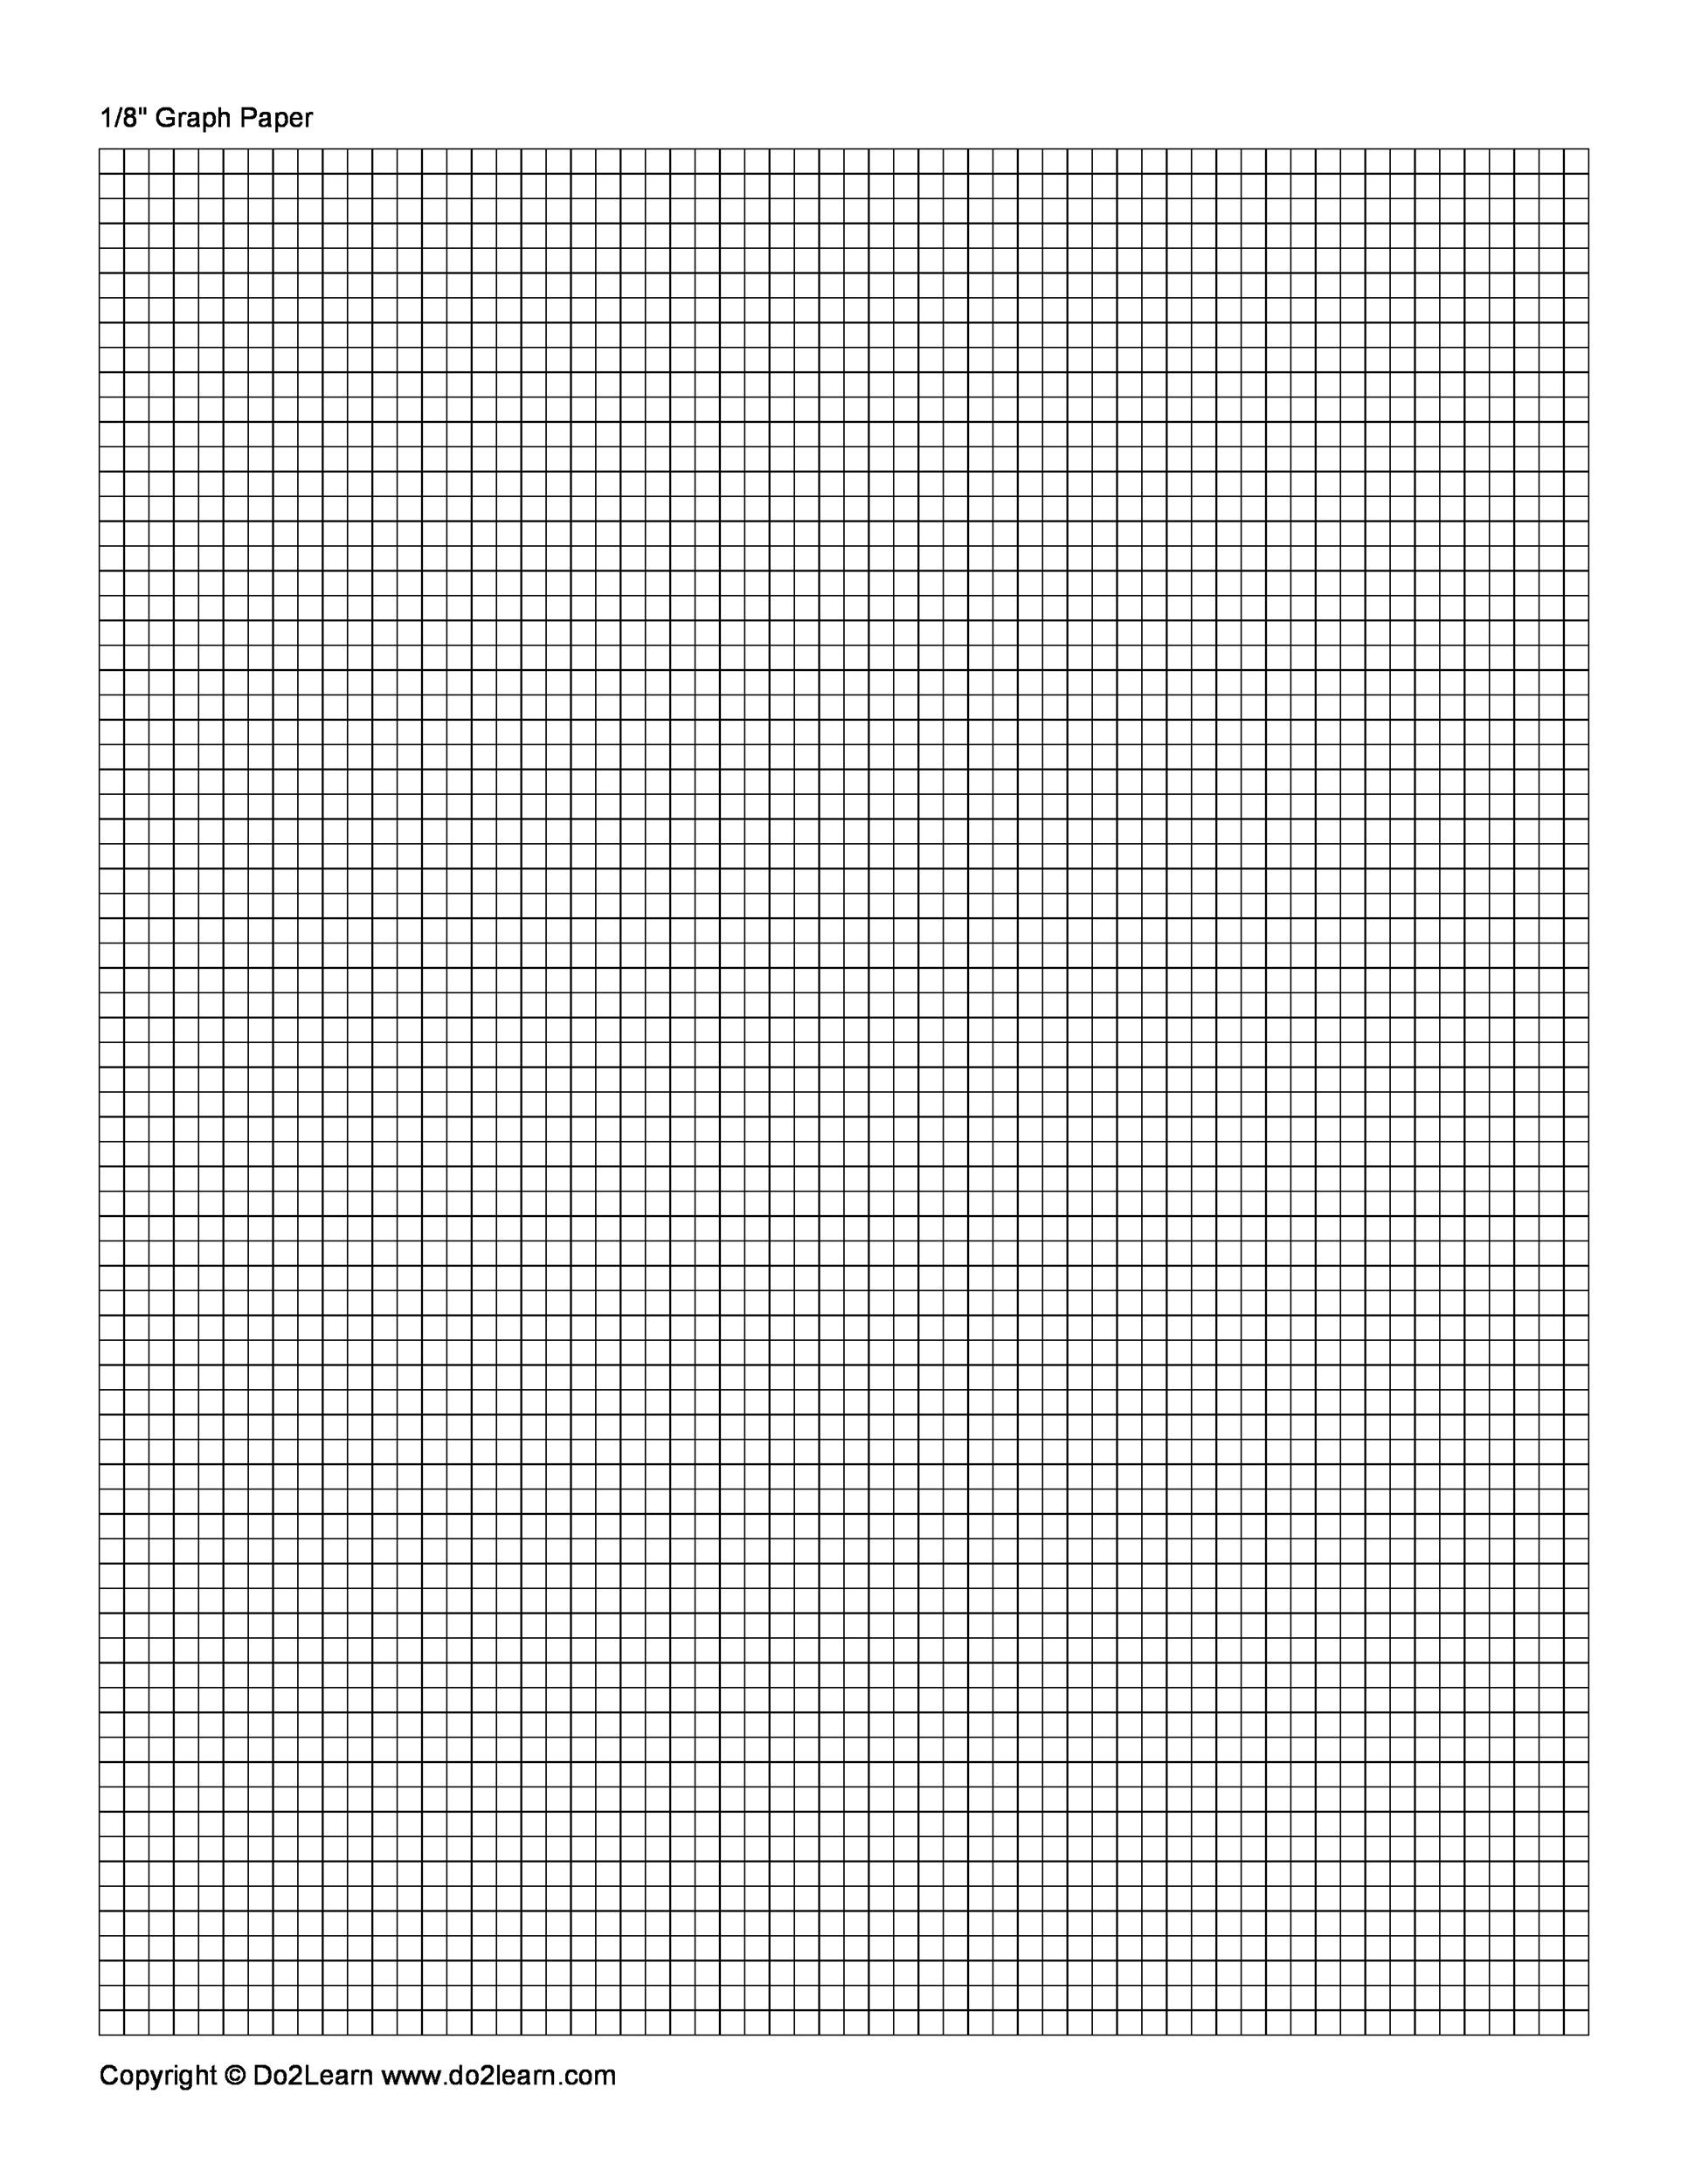 fingerprint paper template - graph paper printouts with x and y axis